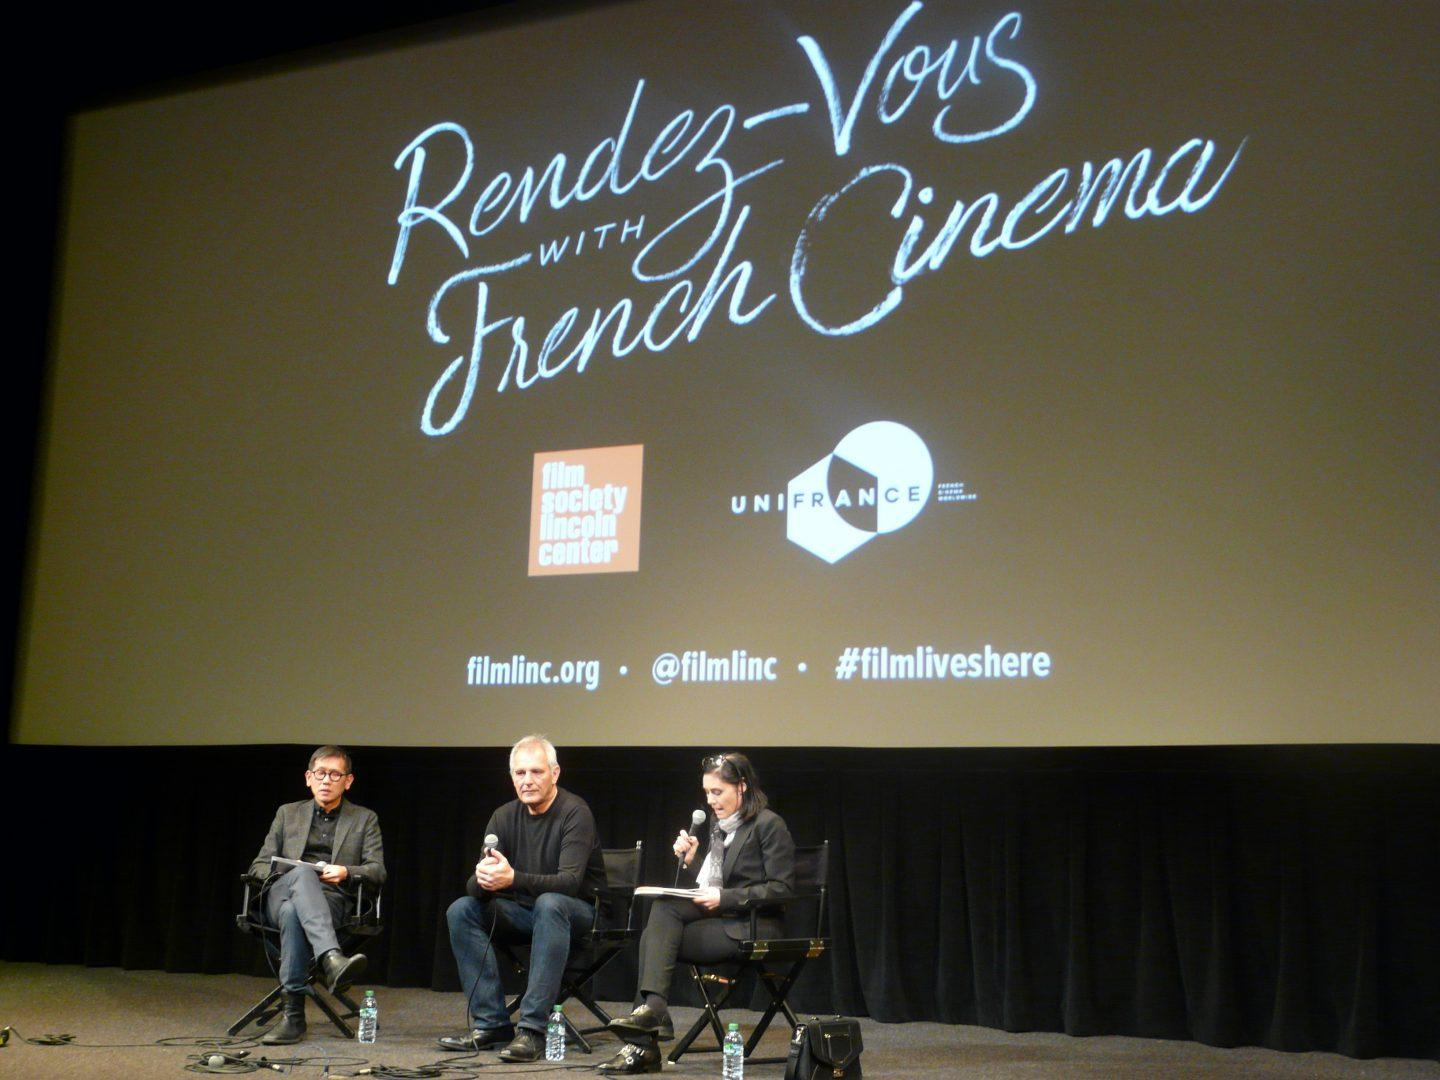 Film Lives Here: Rendez-Vous with French Cinema 2018